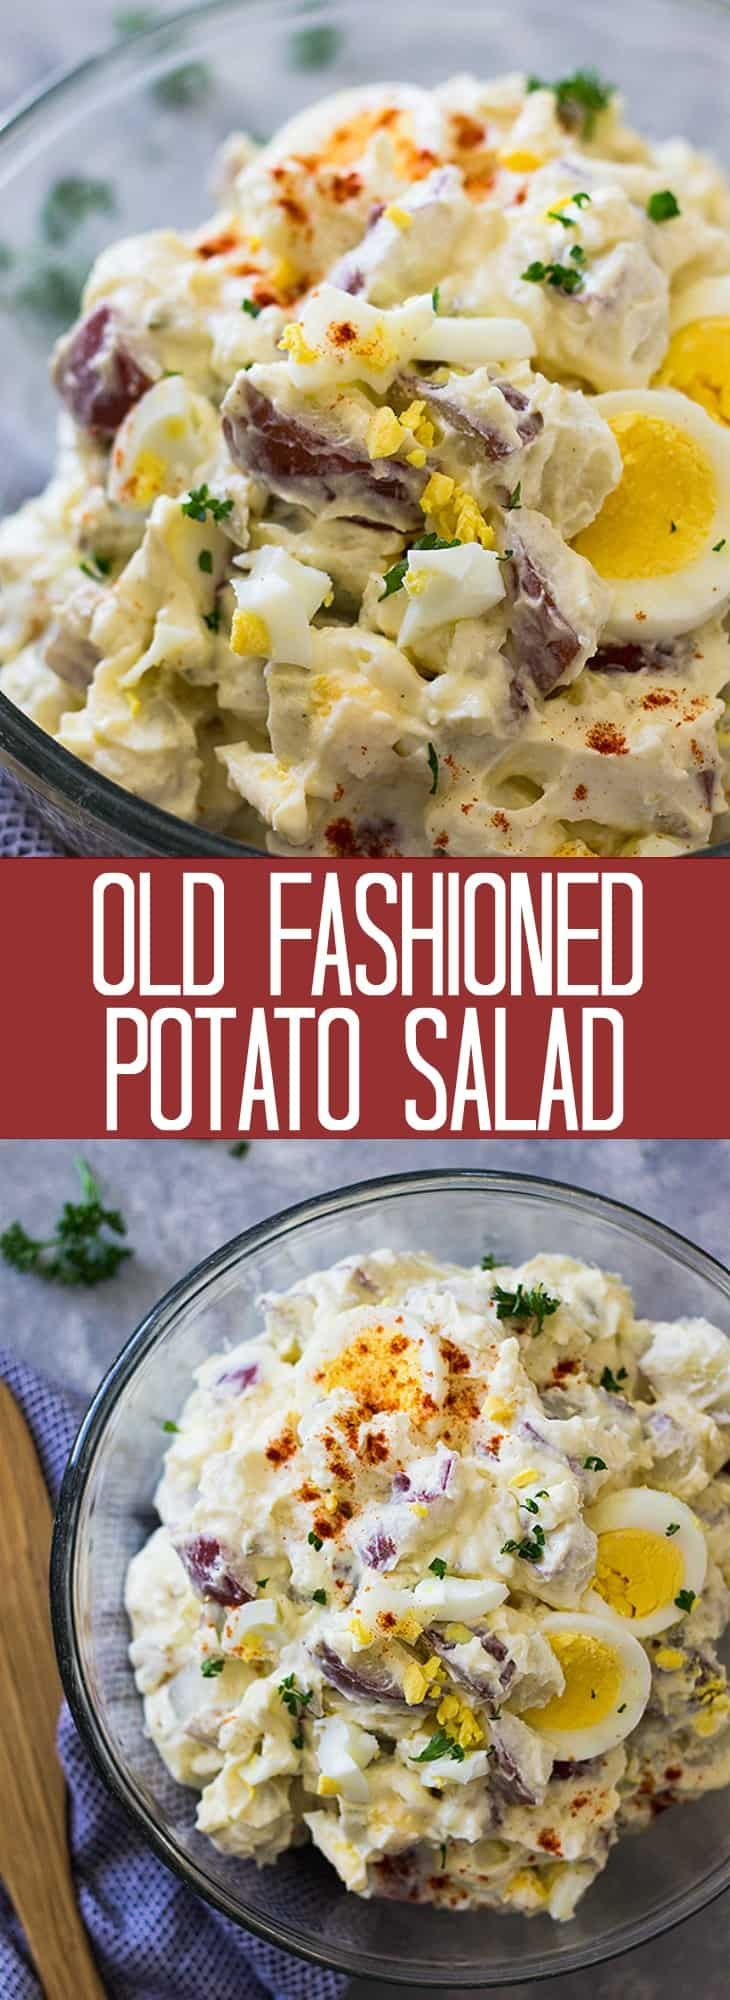 This Old Fashioned Potato Salad is a classic just like grandma made it! It's creamy, made with mayonnaise, sour cream and hard boiled egg. It's perfect for all your summertime get togethers! #potatosalad